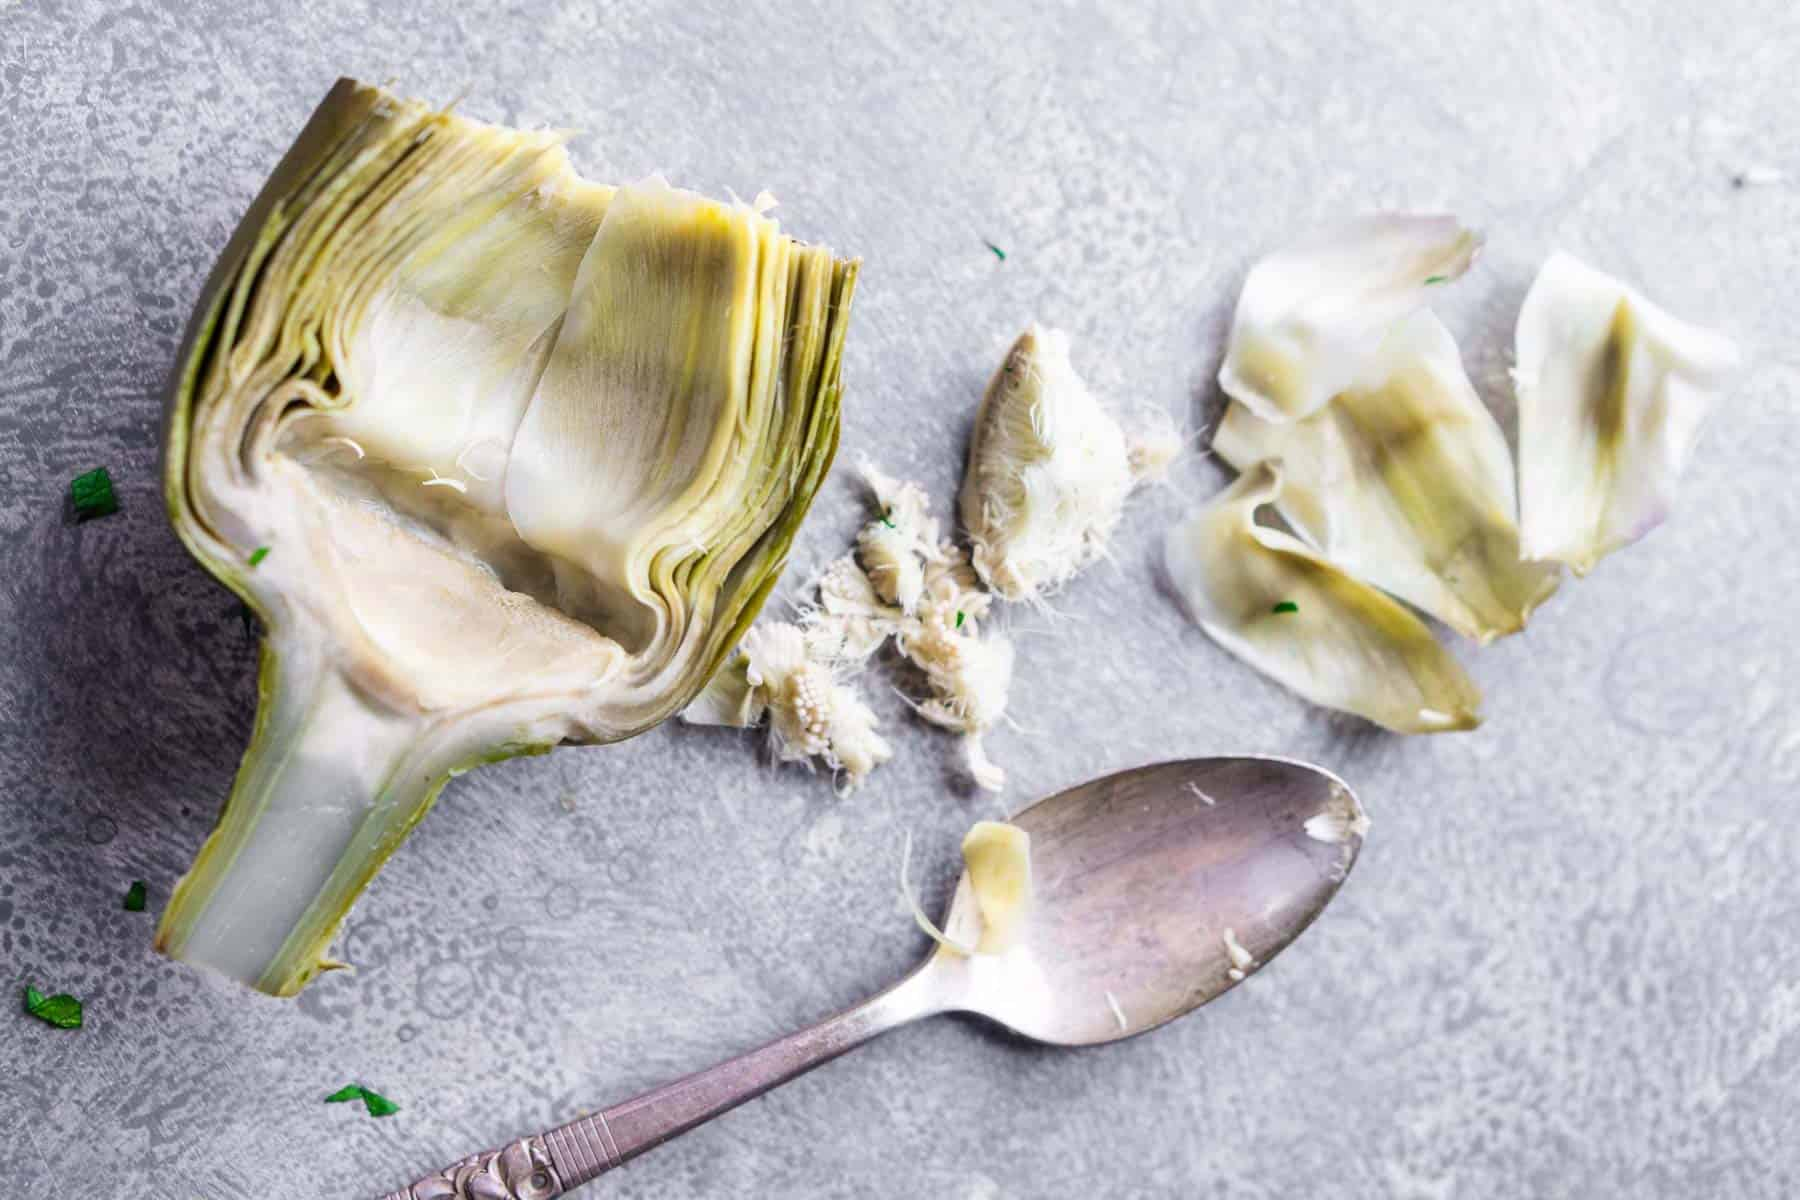 Whole steamed artichoke choke removed removed with a spoon